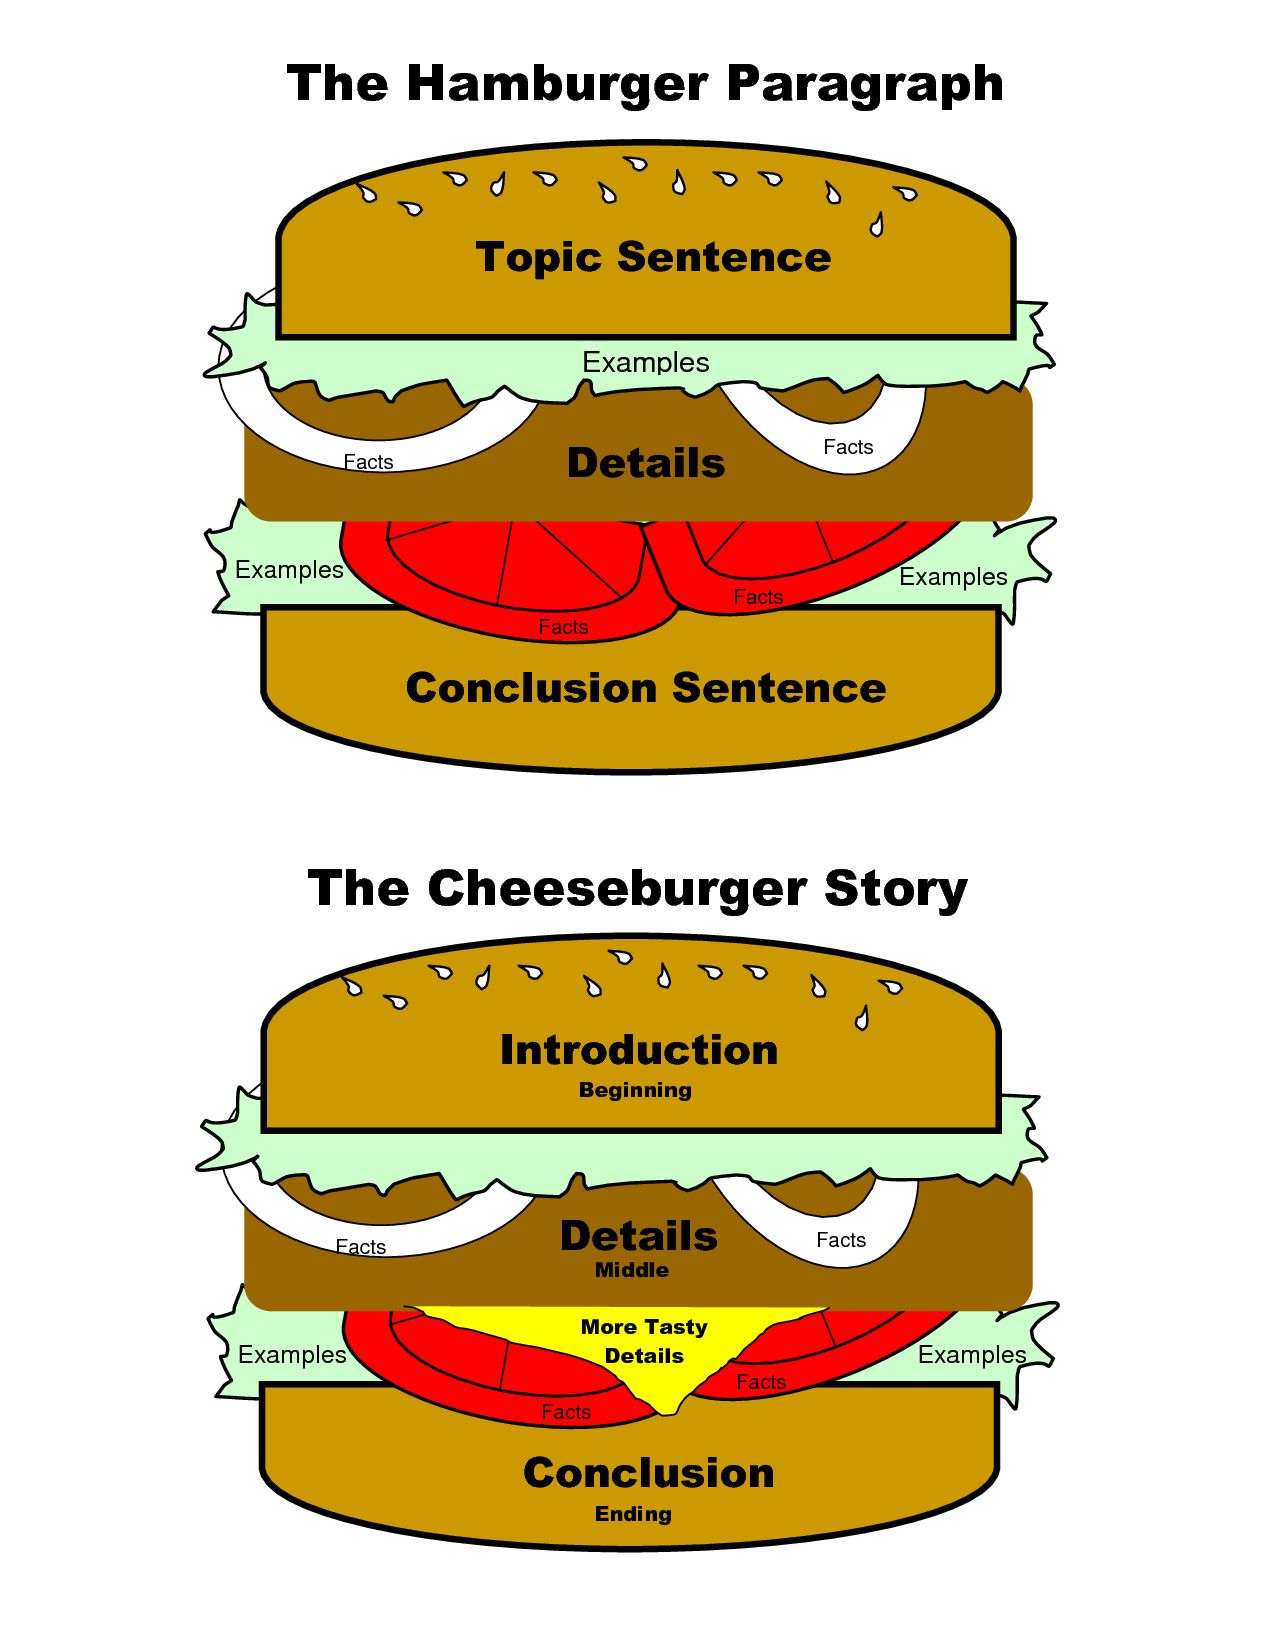 hamburger practices regarding essays